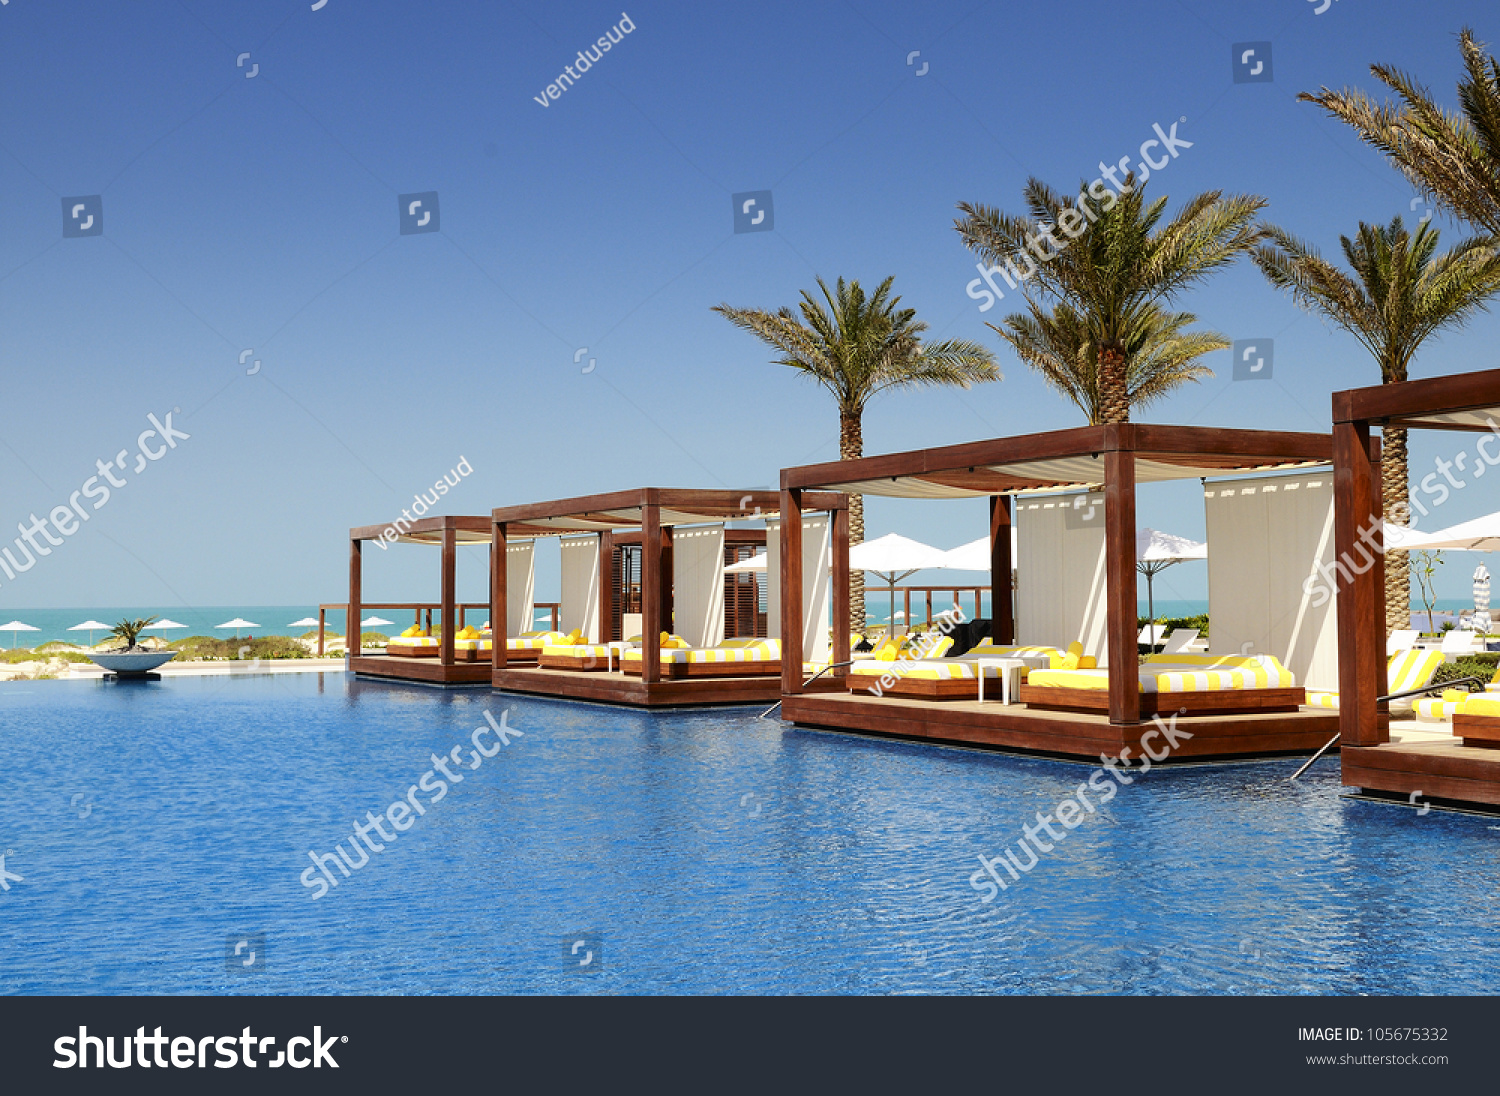 Luxury place resort spa vacations stock photo 105675332 for Luxury places